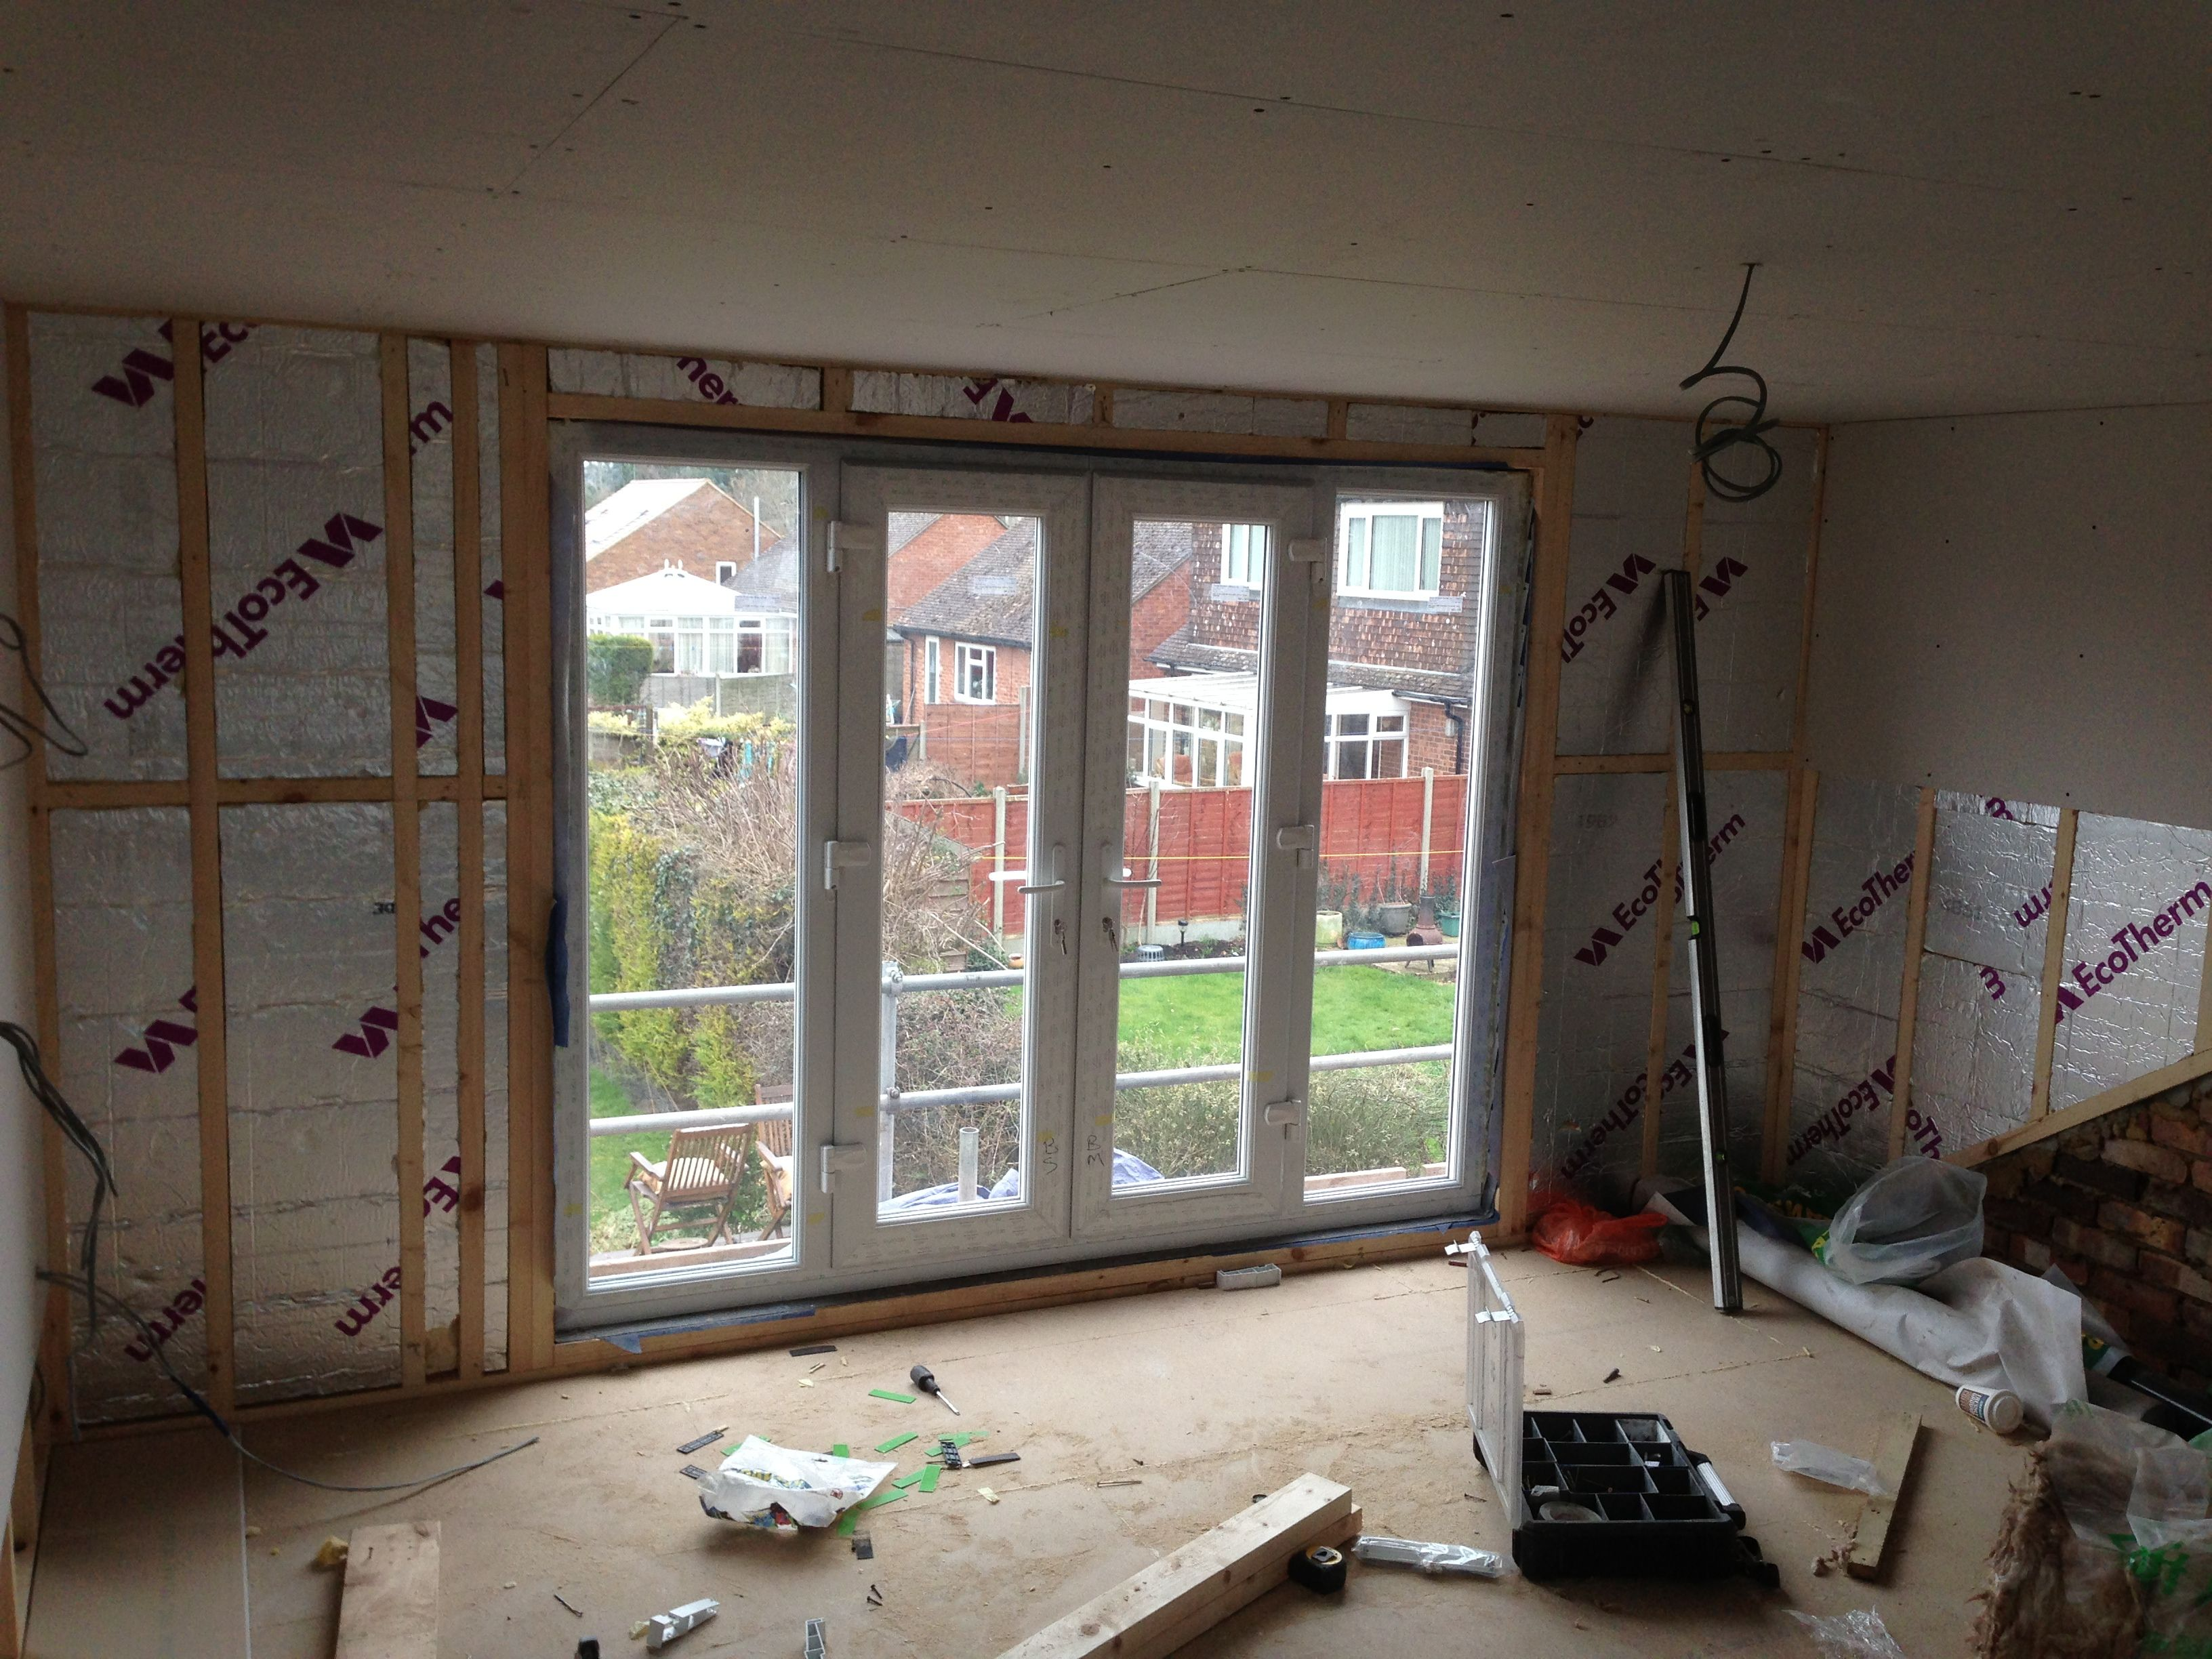 french doors, Juliette balcony, loft conversion